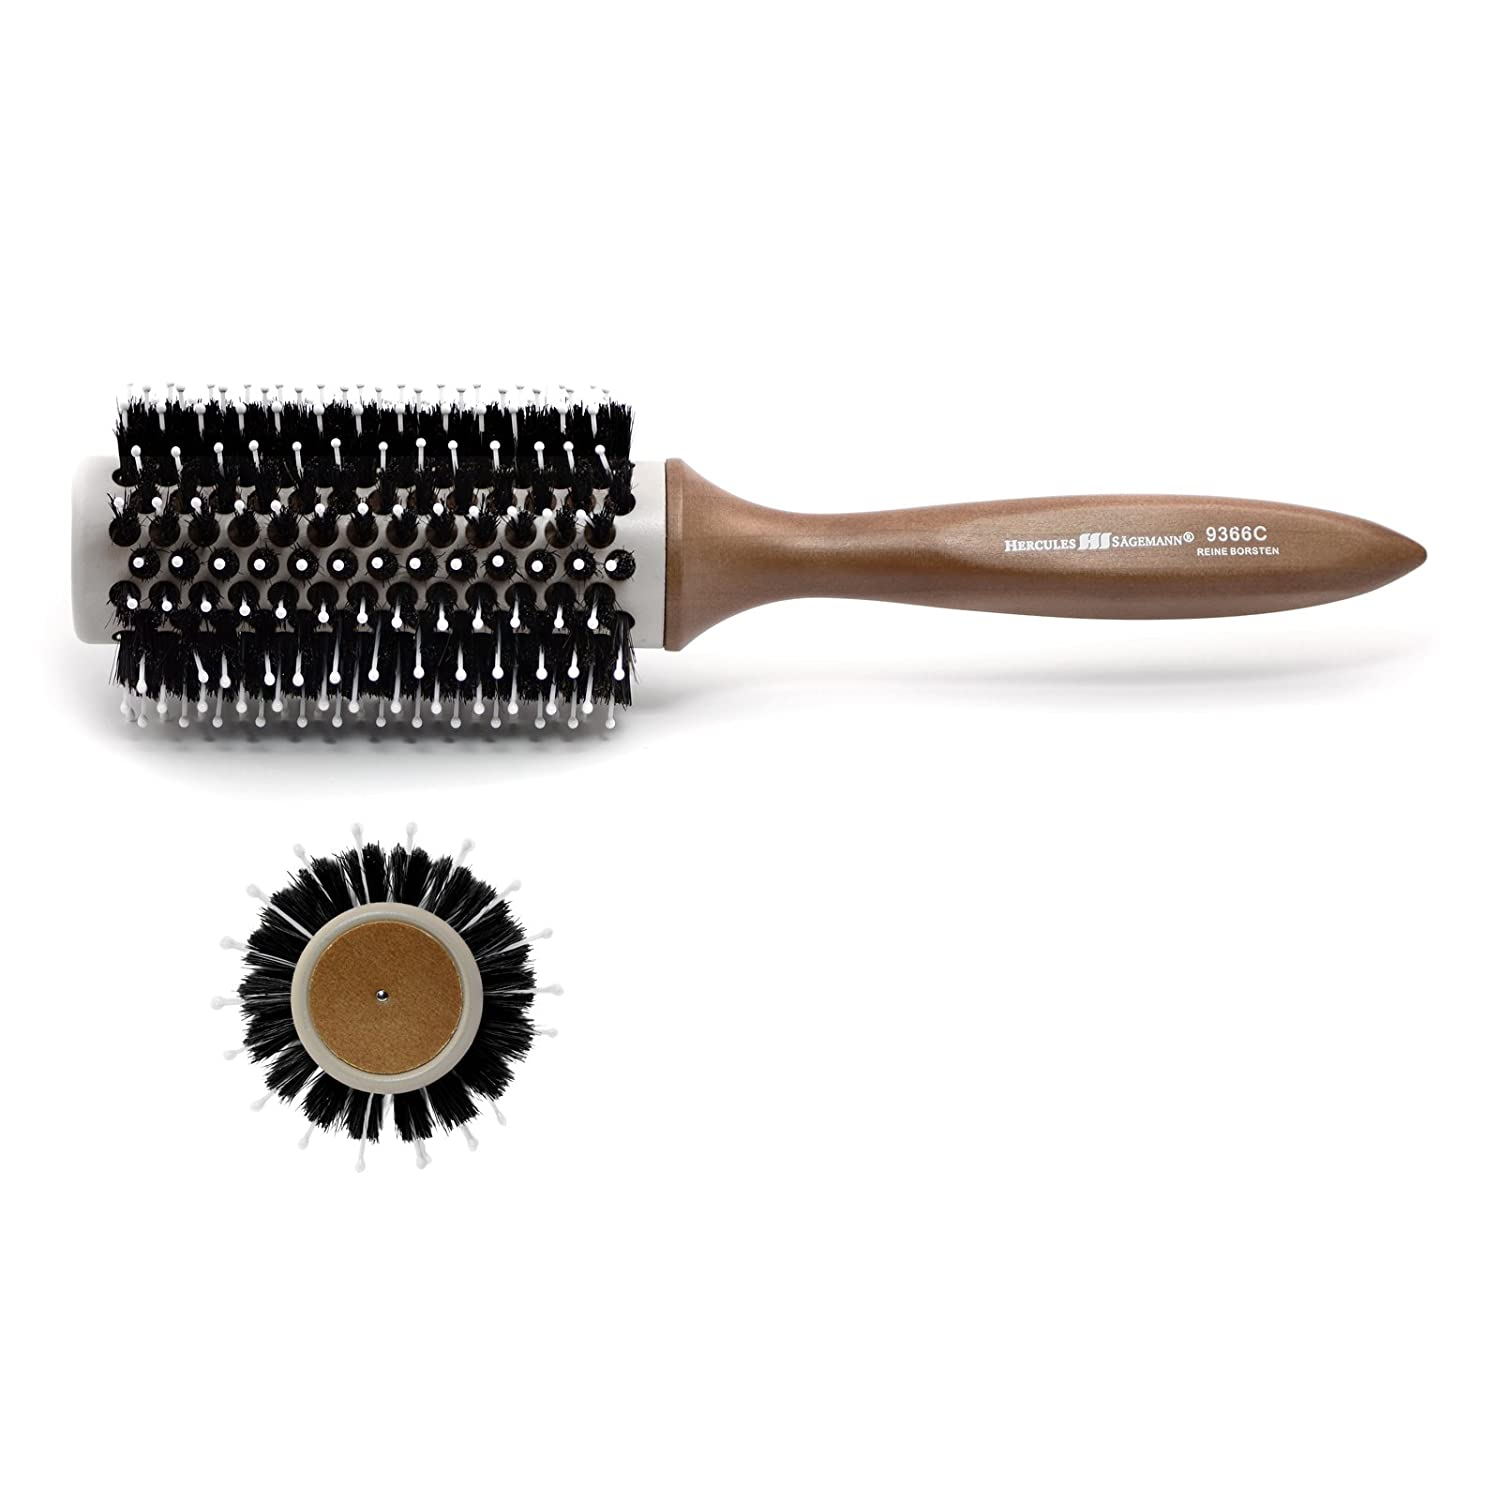 Hercules Sägemann Ceramic Convection Vent Brush with Natural Boar Bristles | Radial/Round Brush designed in Germany - For Hair Drying, Styling, Curling, Adding Hair Volume and Shine